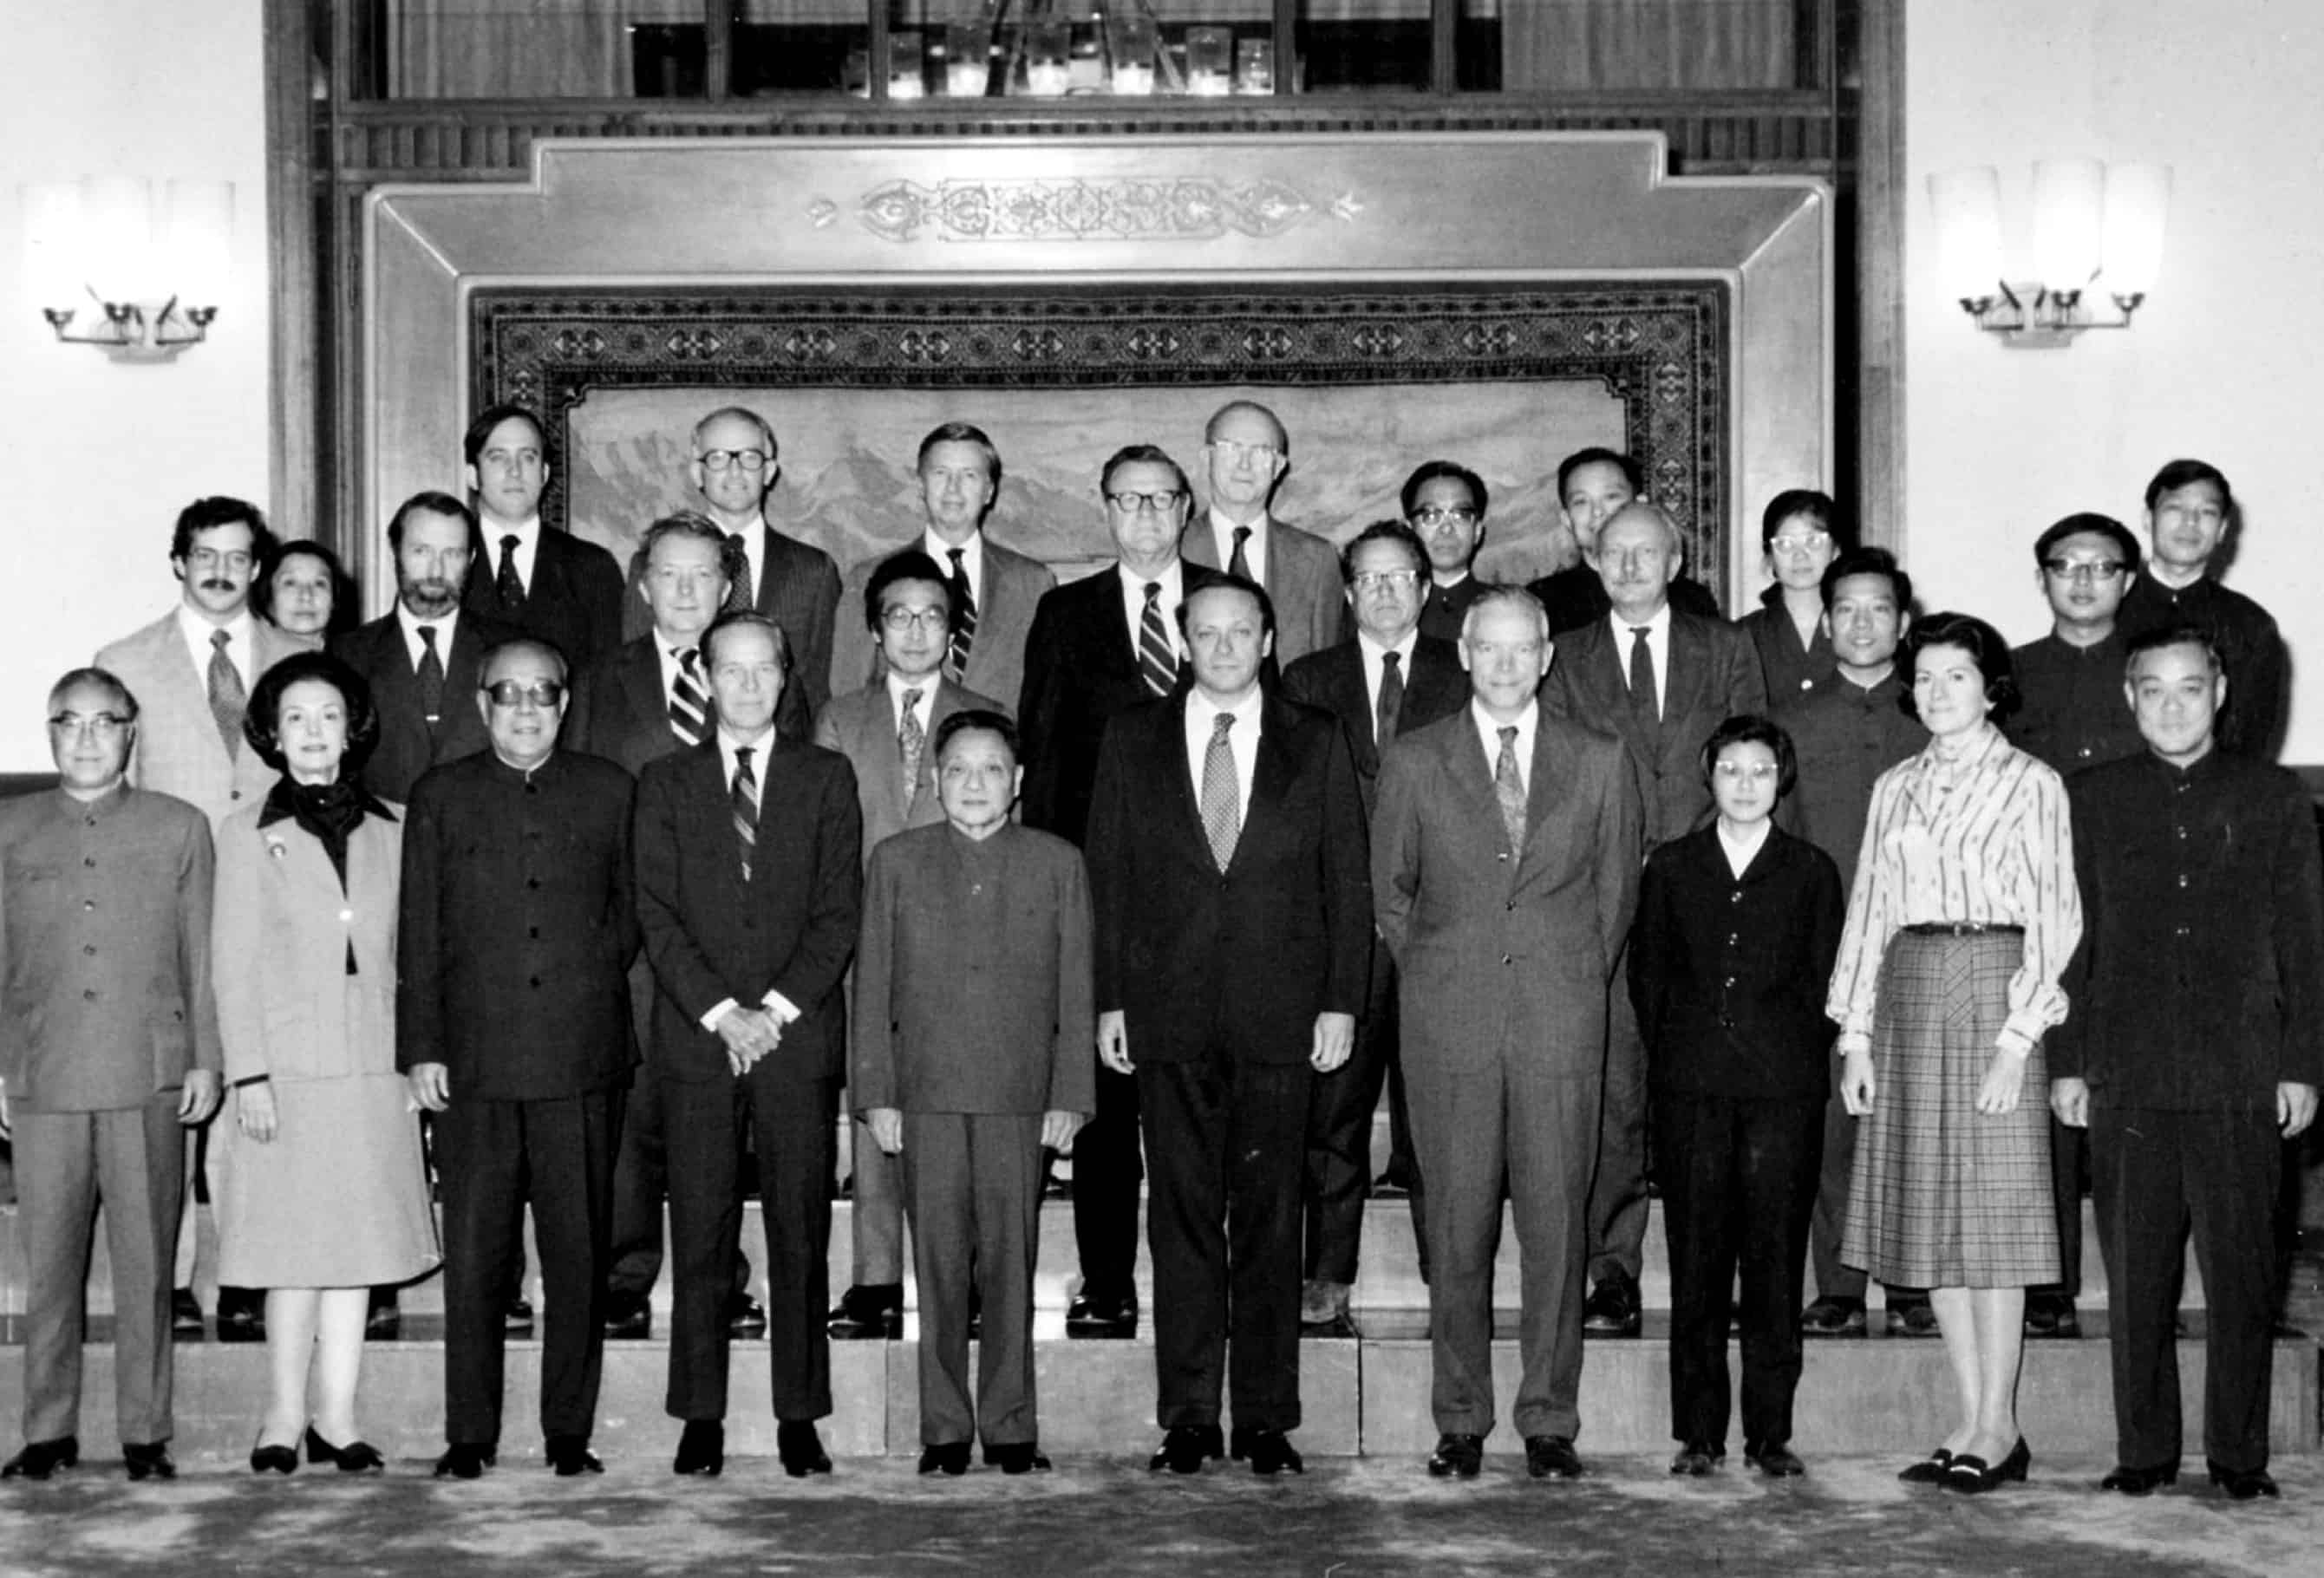 Deng Xiaoping, Chou Wen-chung and the National Committee on US-China Relations. Beijing, China, 1977.